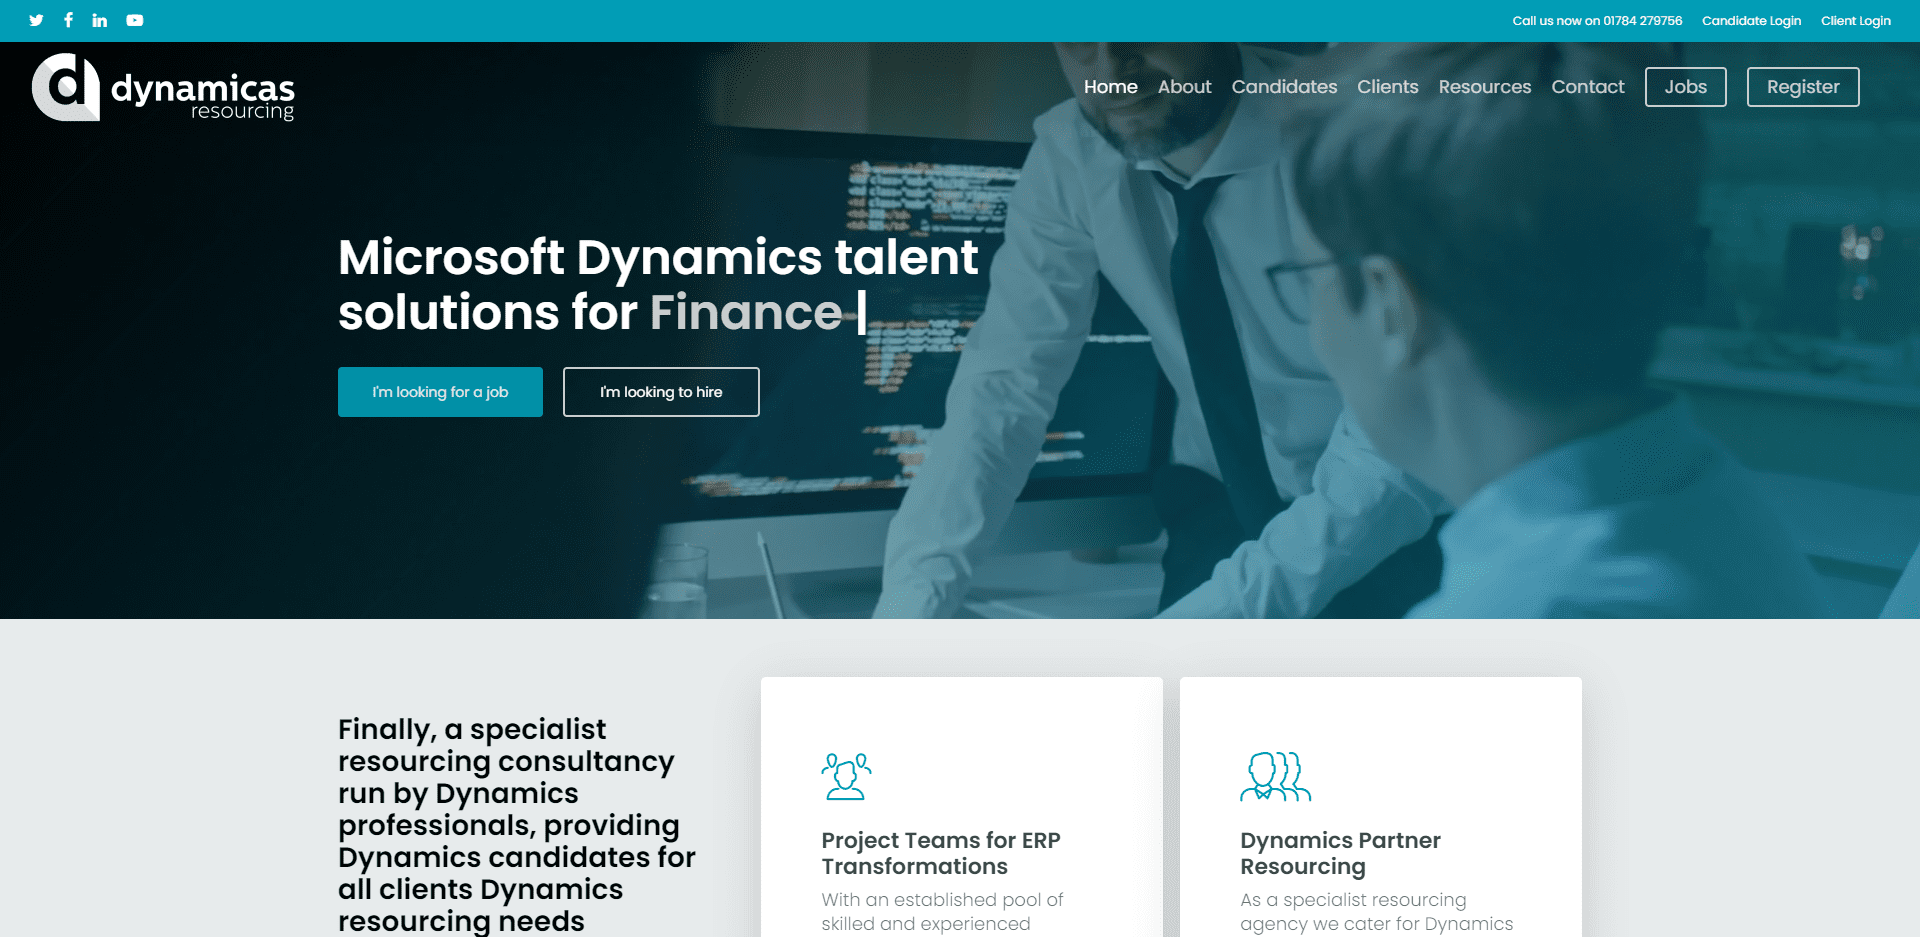 Dynamicas Resourcing